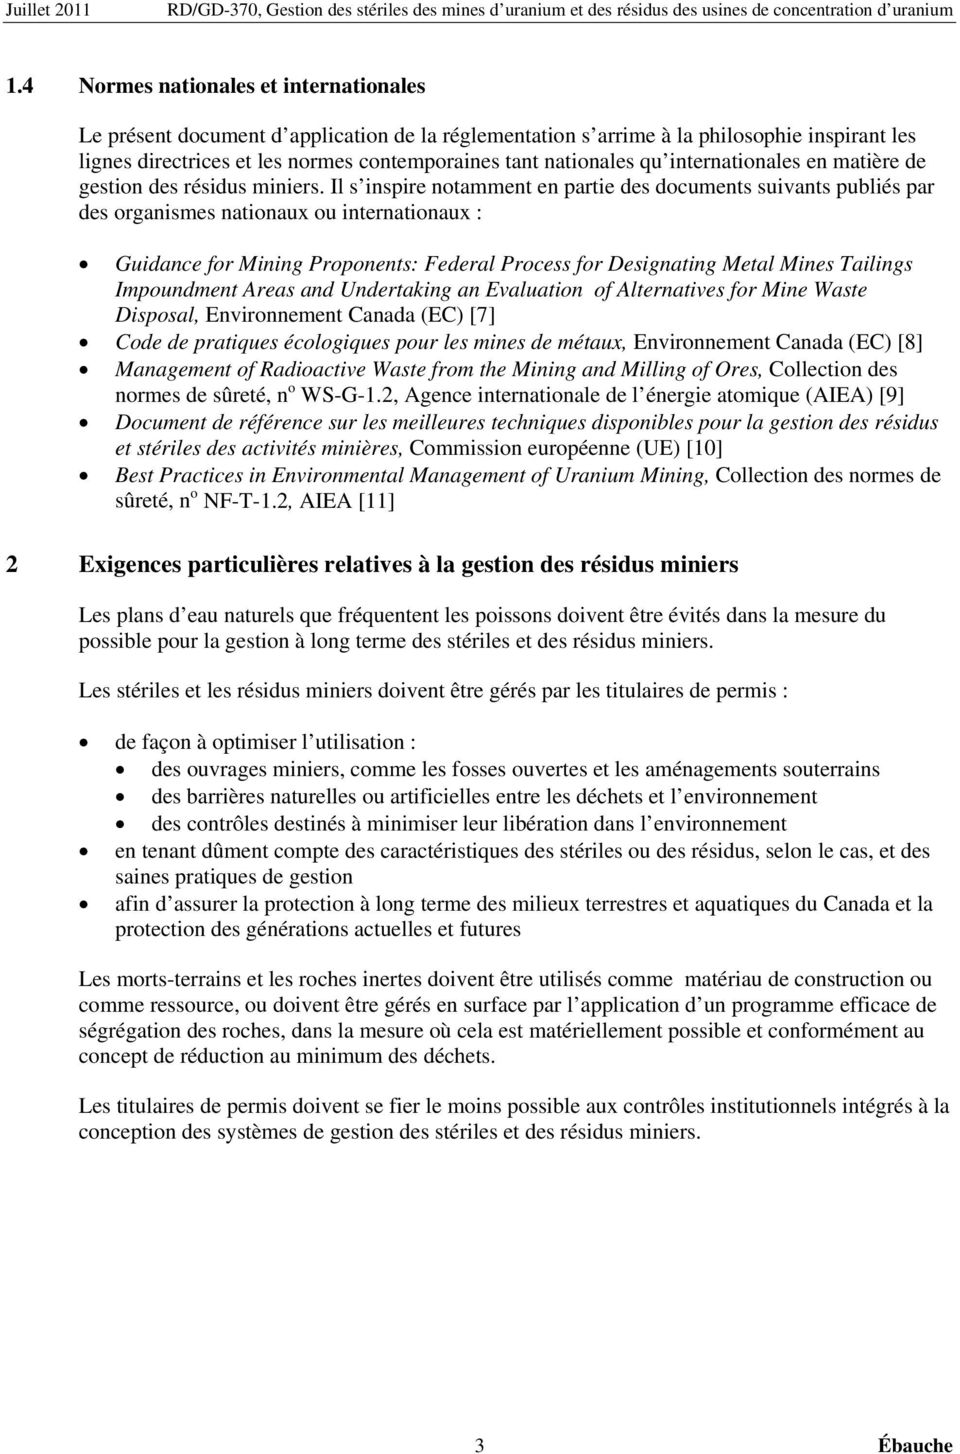 Il s inspire notamment en partie des documents suivants publiés par des organismes nationaux ou internationaux : Guidance for Mining Proponents: Federal Process for Designating Metal Mines Tailings